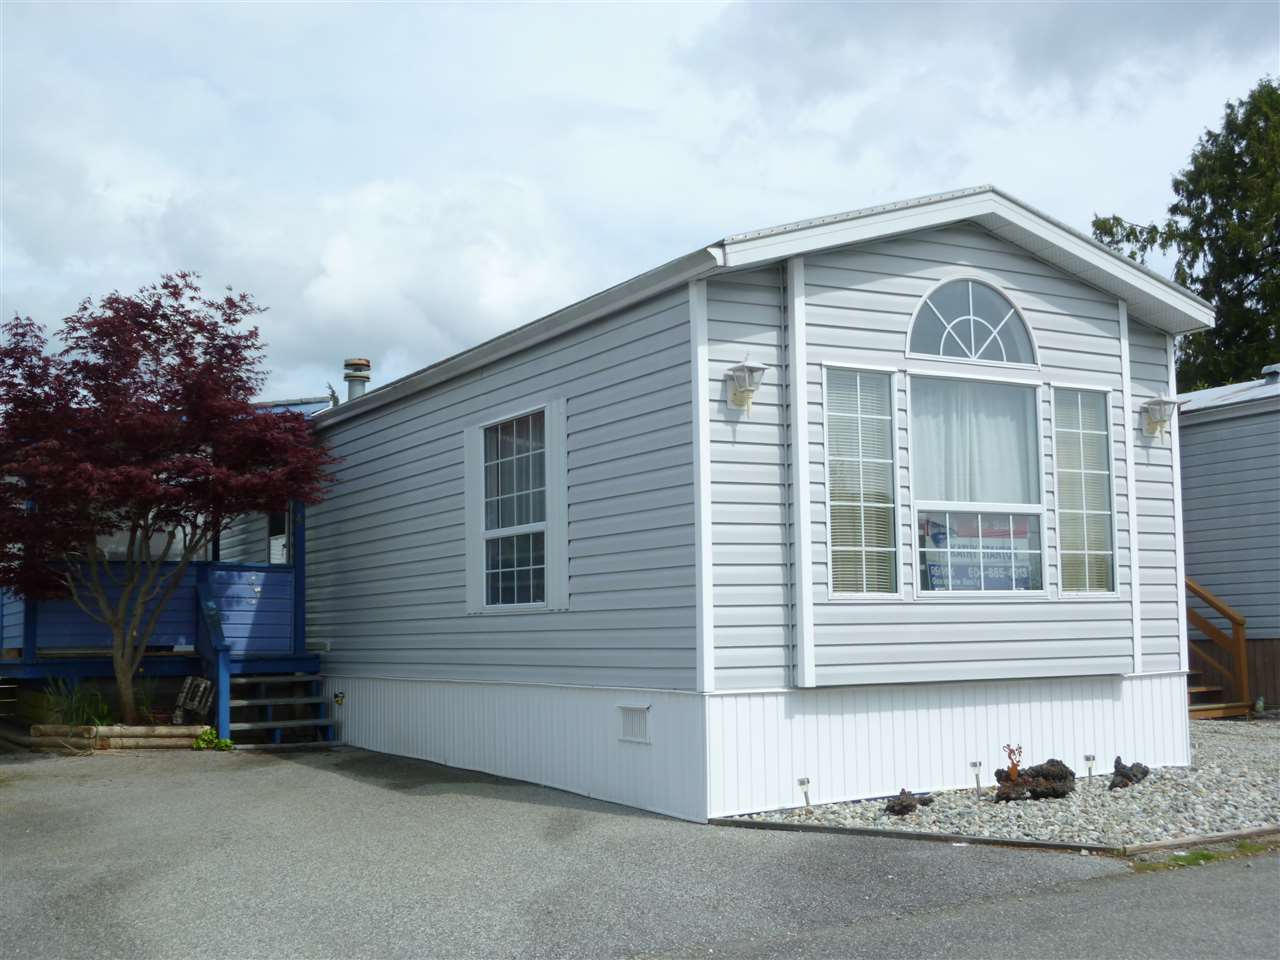 "Main Photo: 14 5575 MASON Road in Sechelt: Sechelt District Manufactured Home for sale in ""MASON RD MOBILE HOME PARK"" (Sunshine Coast)  : MLS® # R2056997"